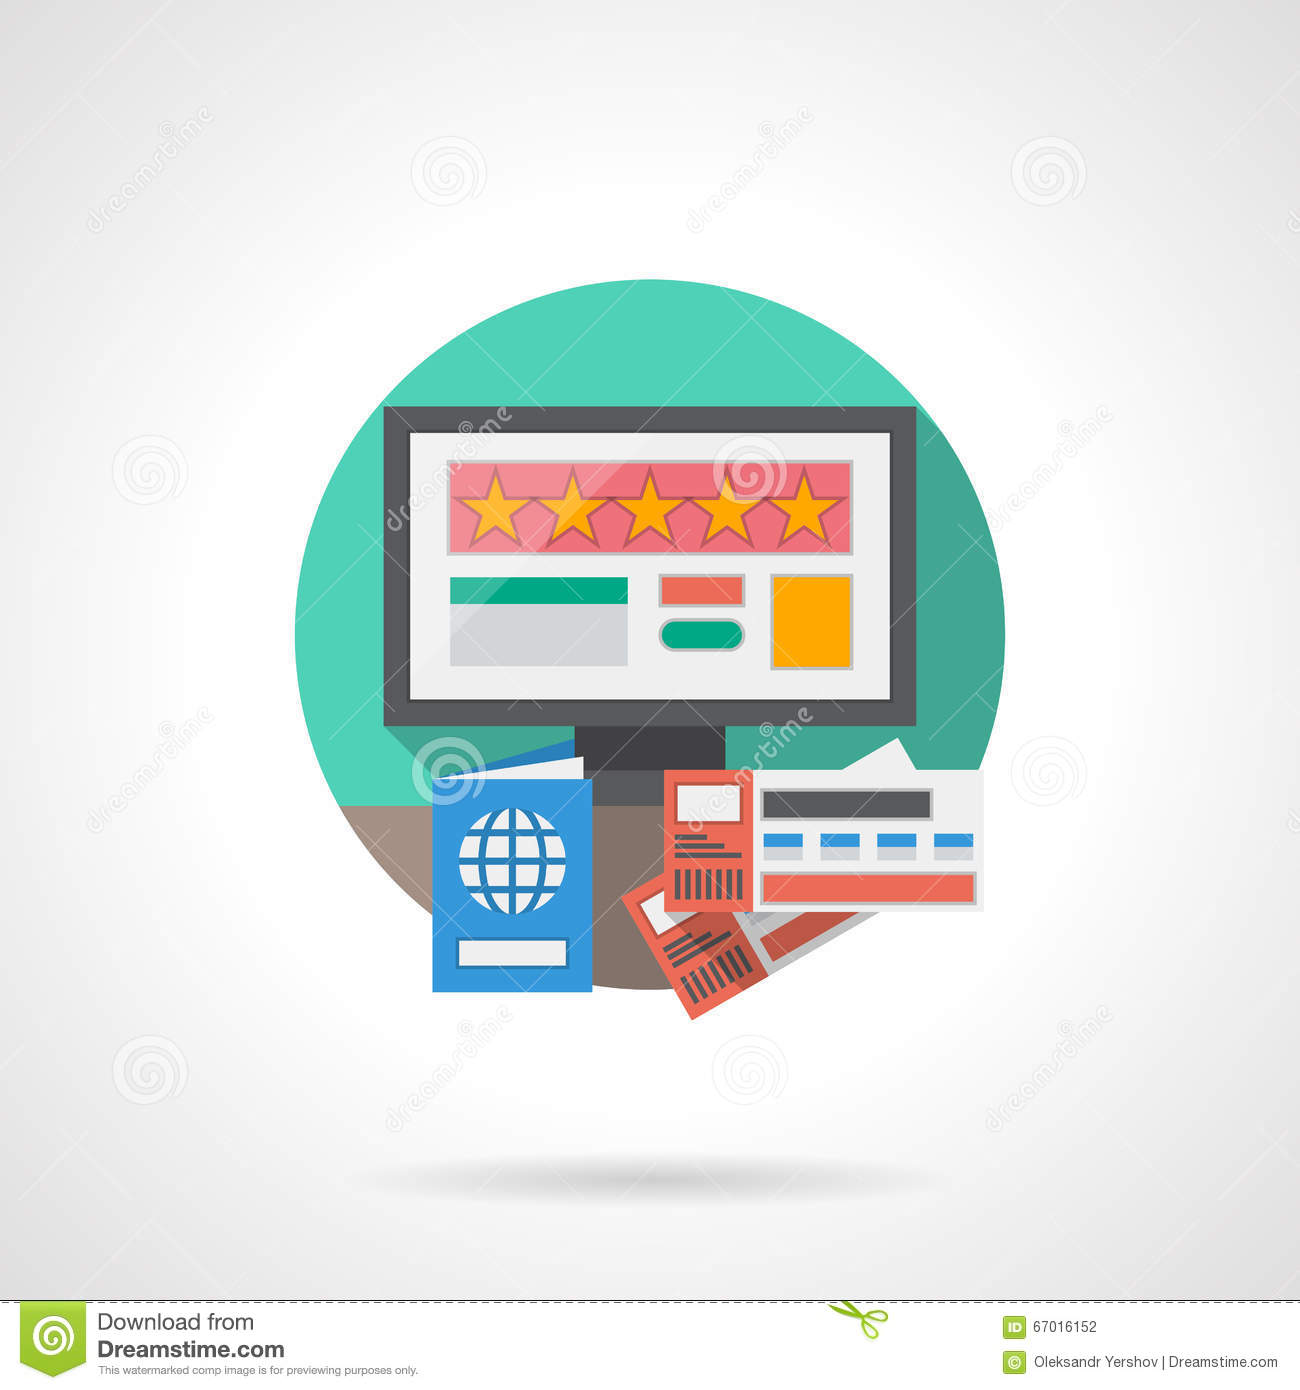 Online hotel detailed flat color icon stock illustration for Hotel booking design